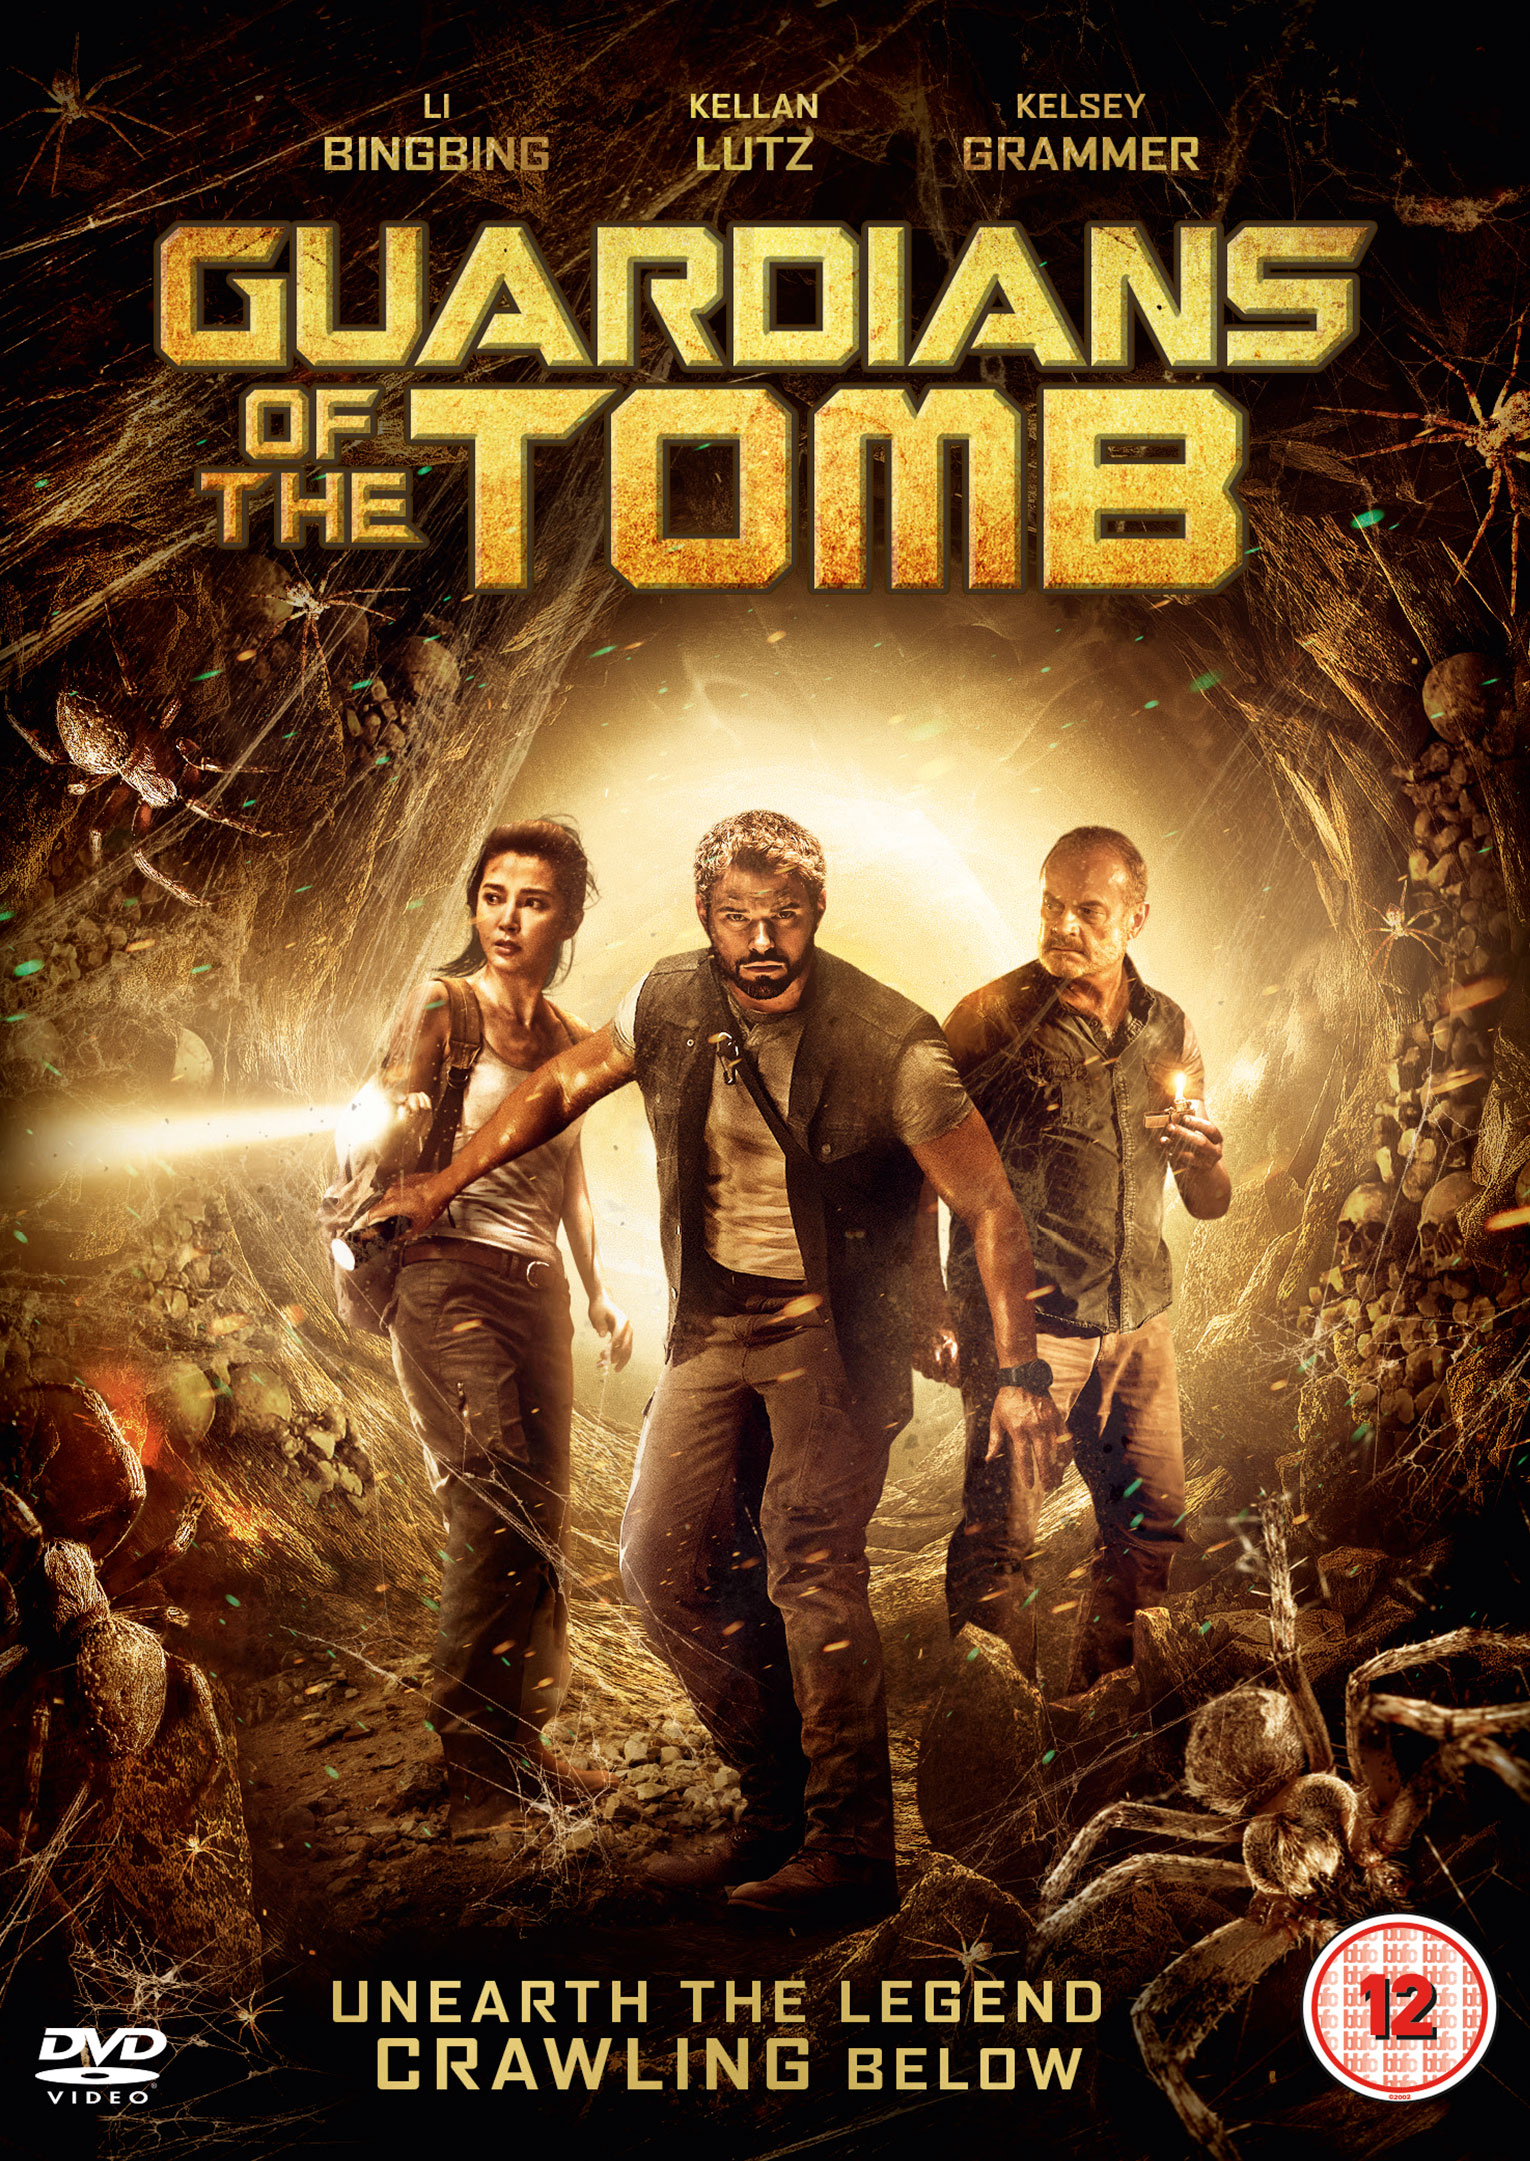 guardians-of-the-tomb-dvd.jpg